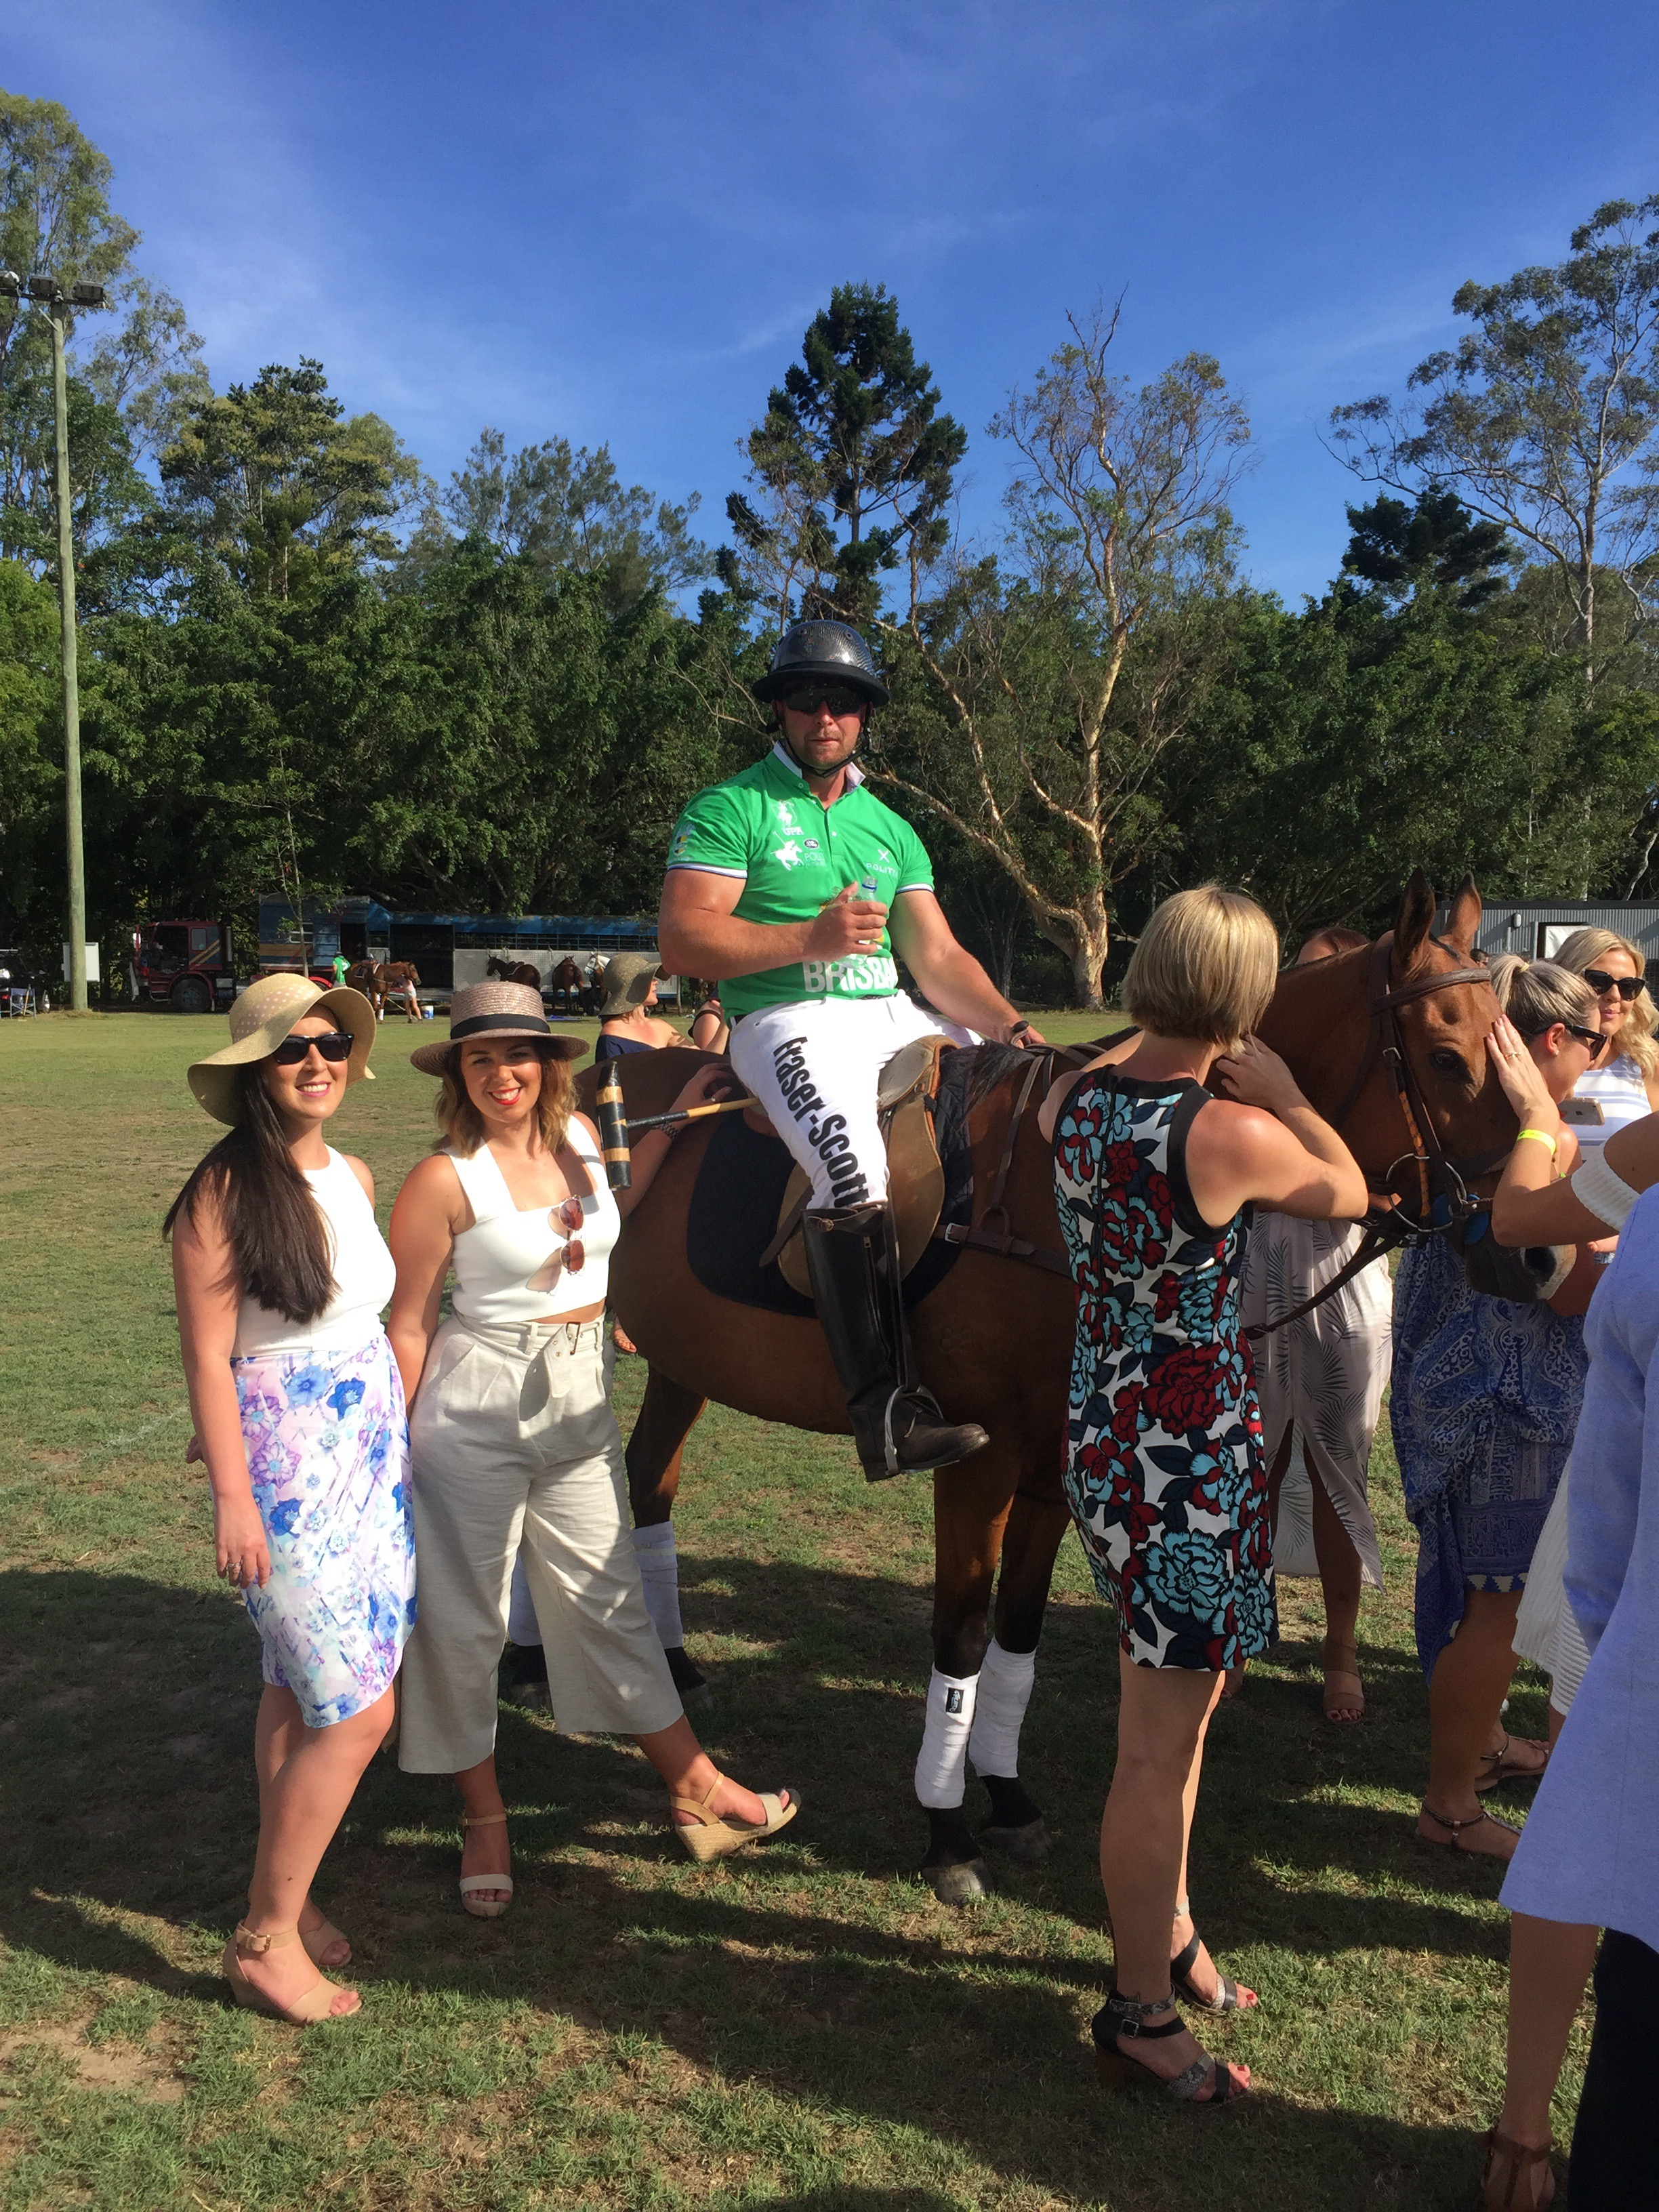 Polo in the city – Brisbane